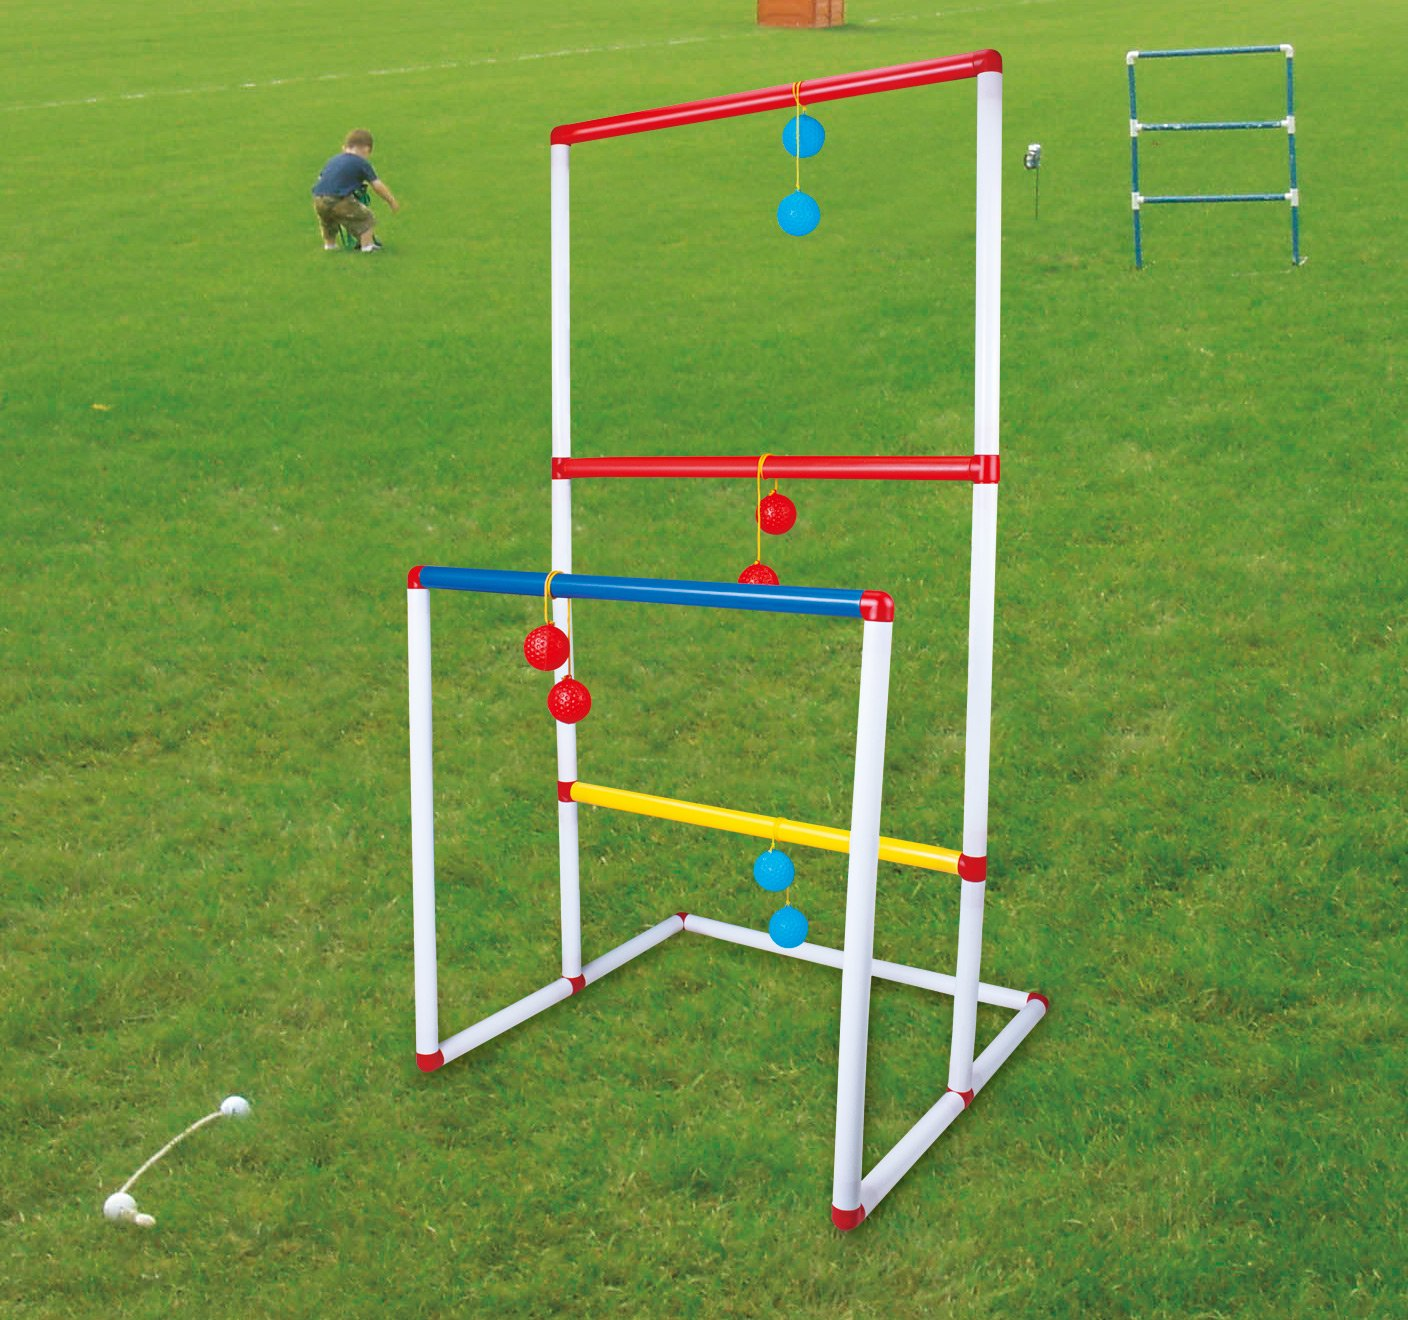 Lightjust Ladder Toss Game Set, Ladderball Game Set with 6 Bolos for Indoor or Outdoor